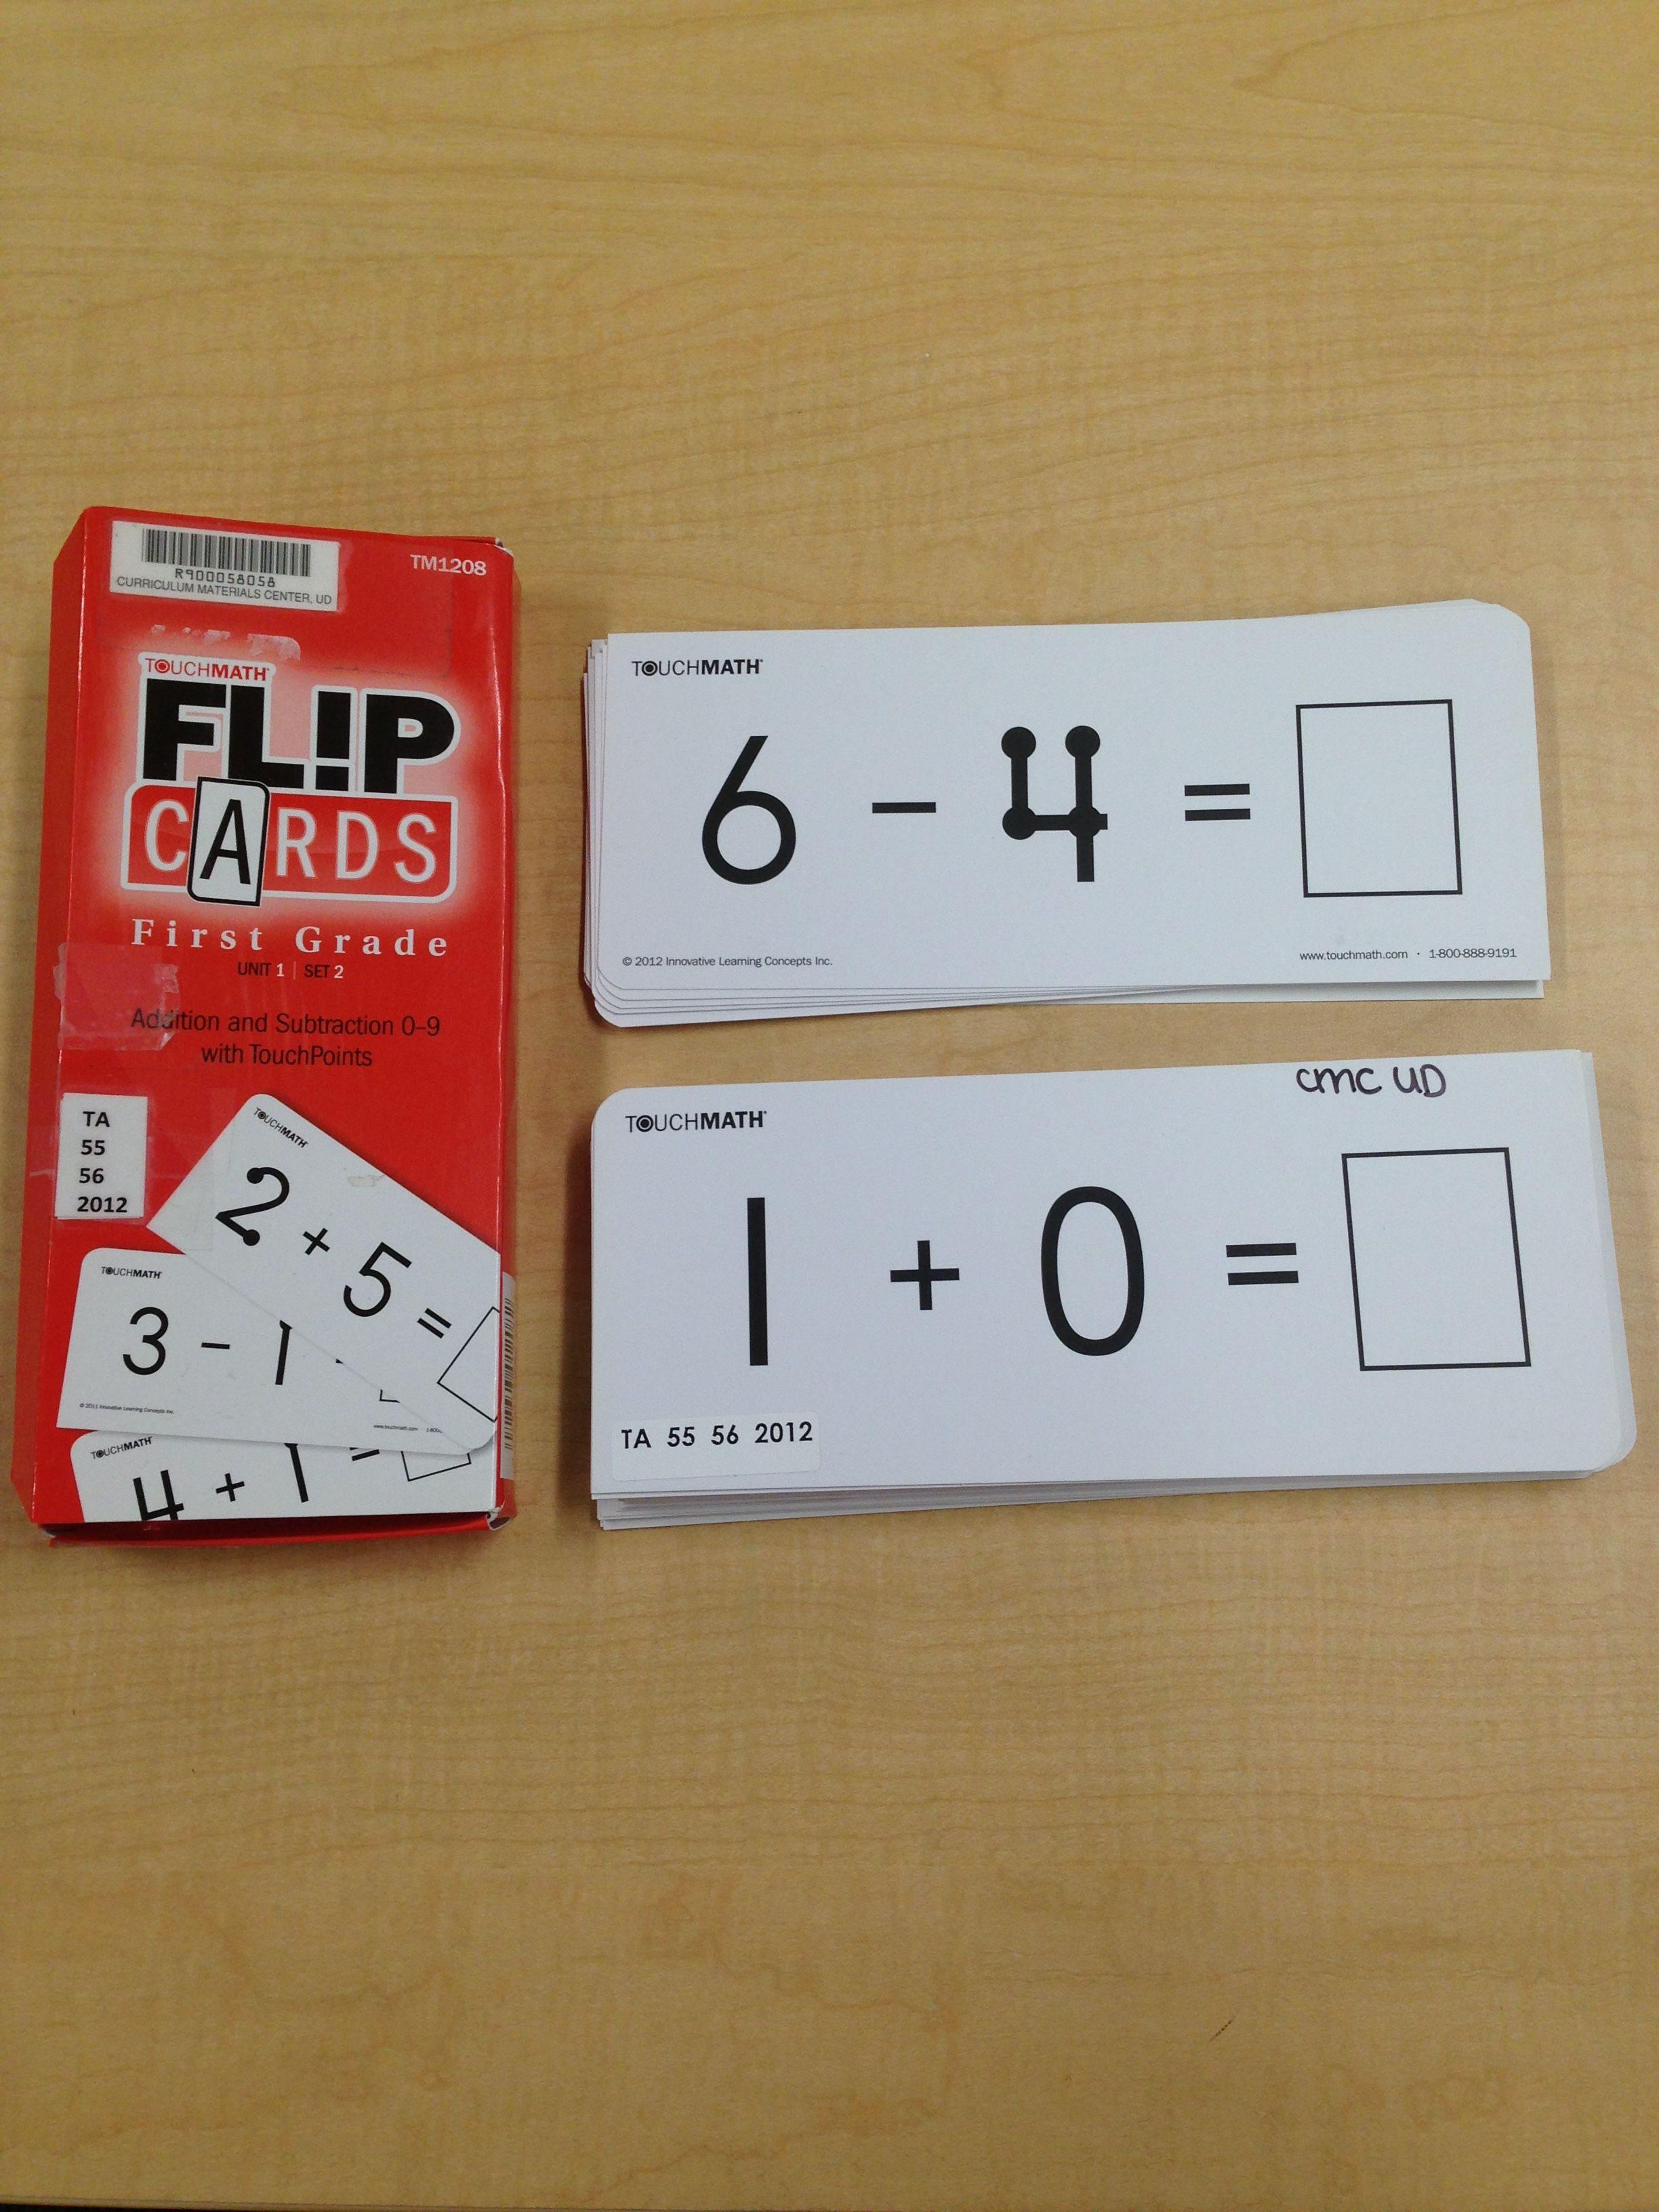 TouchMath flip cards: addition and subtraction 0-9 with TouchPoints ...